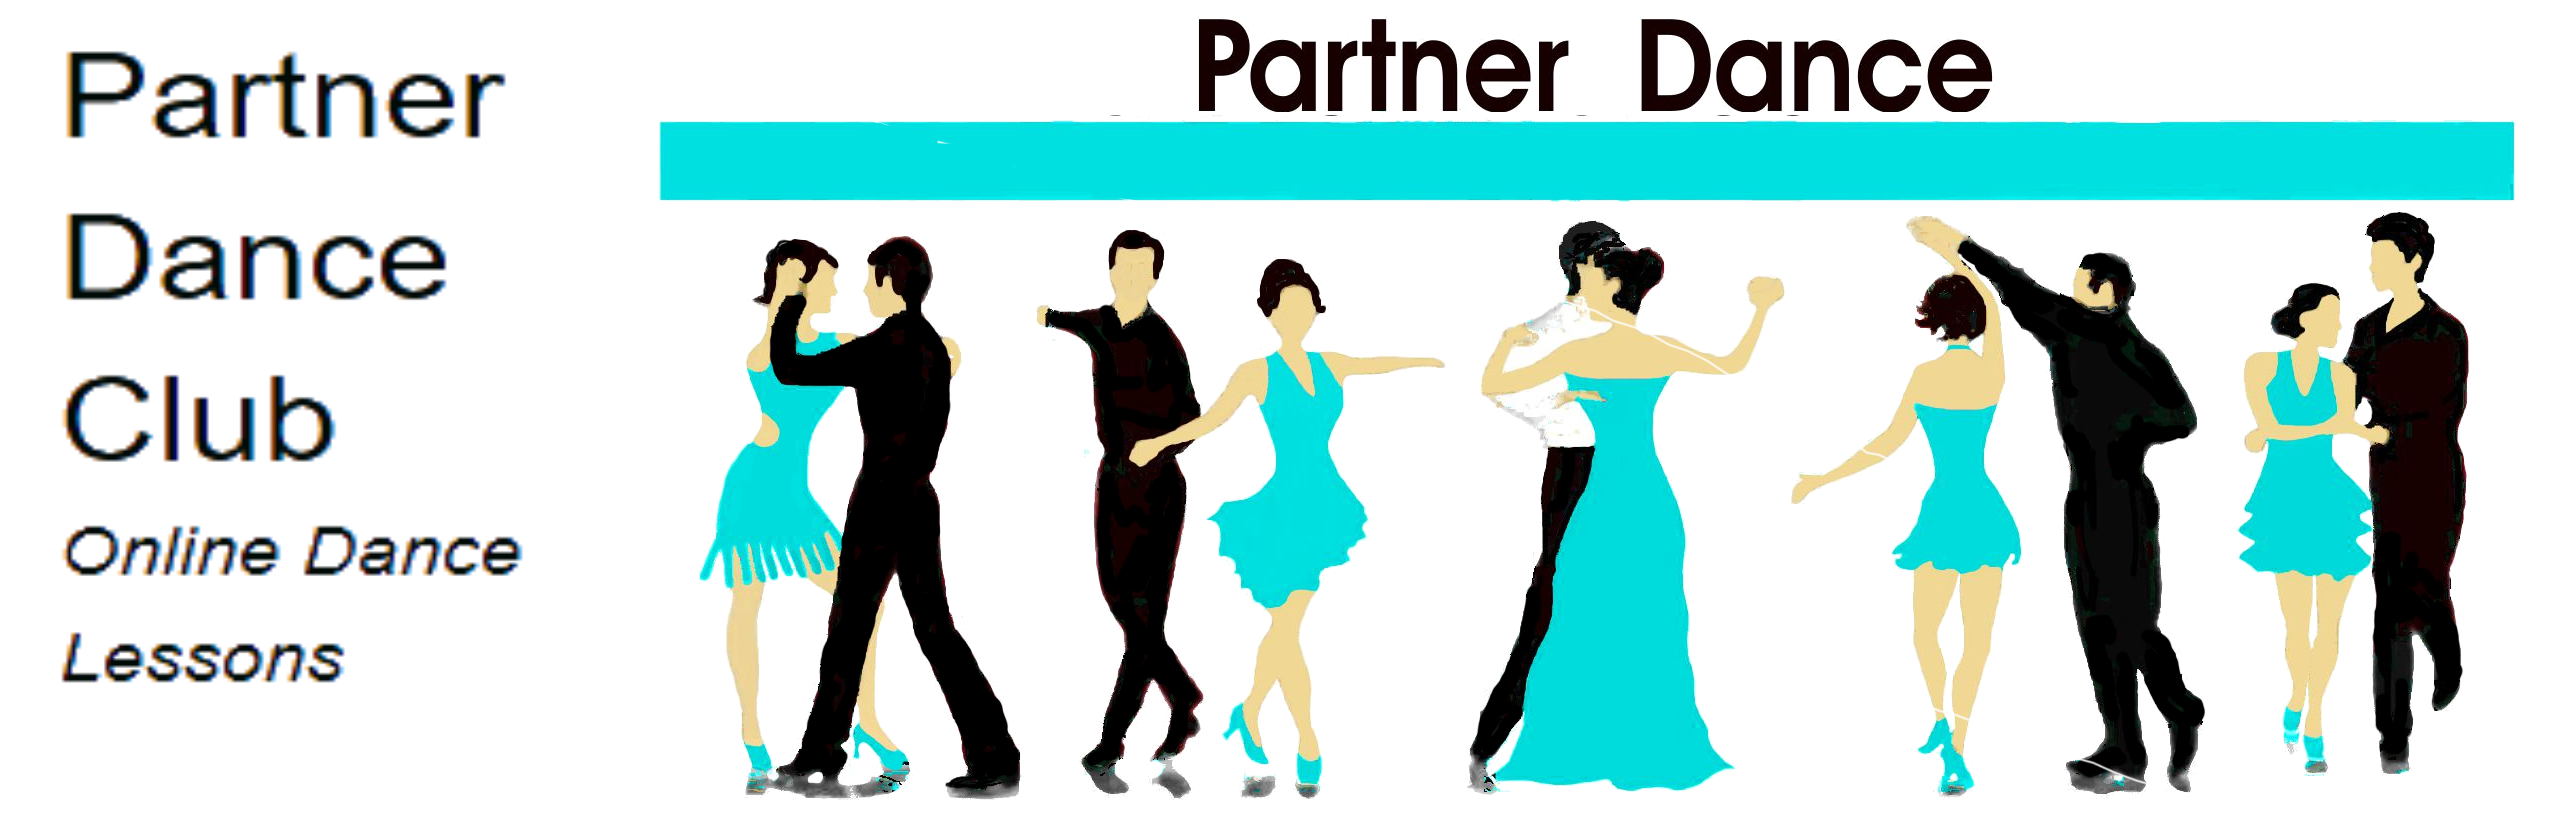 Partner Dance Club Online